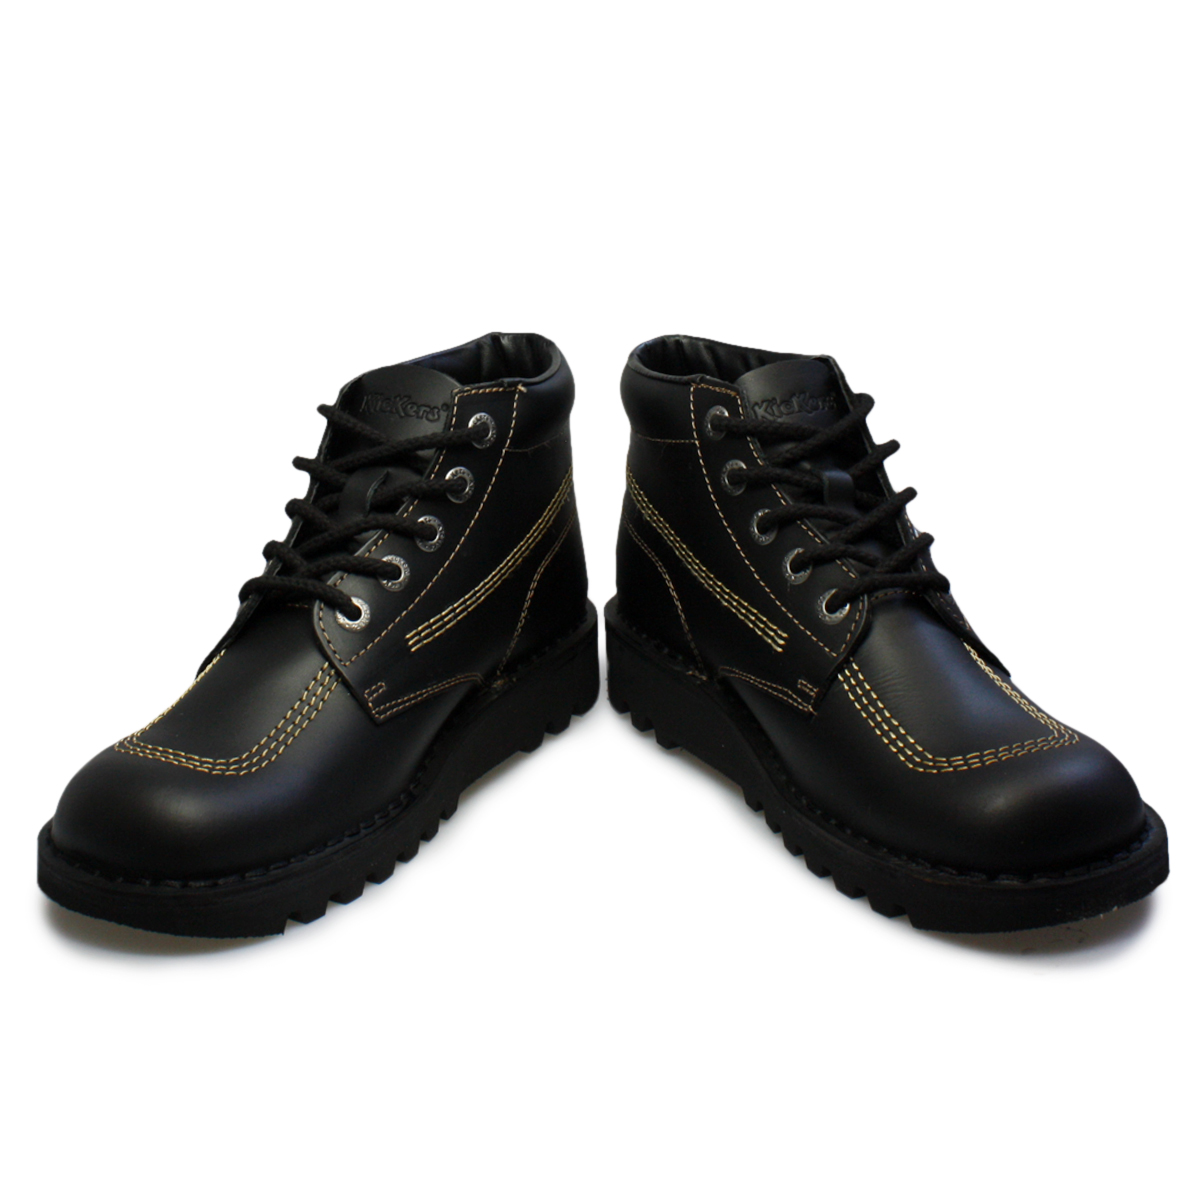 958767bc806016 22 brilliant Boot School Shoes. Kickers Kick Hi M Core Black Gold Leather  Youth School .